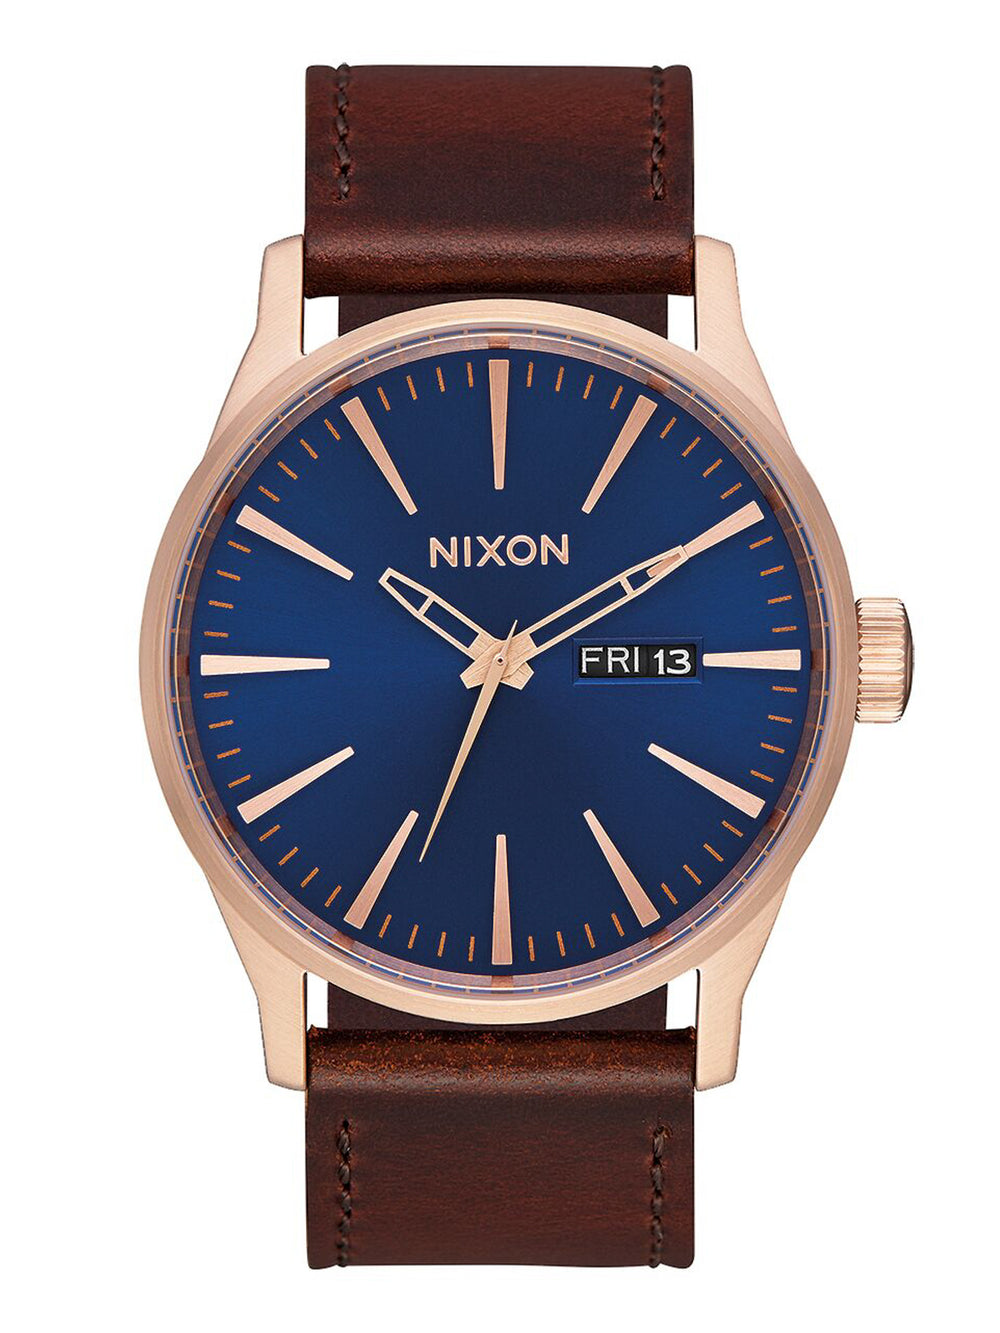 MENS SENTRY LEATHER - ROS/NVY/BRN WATCH